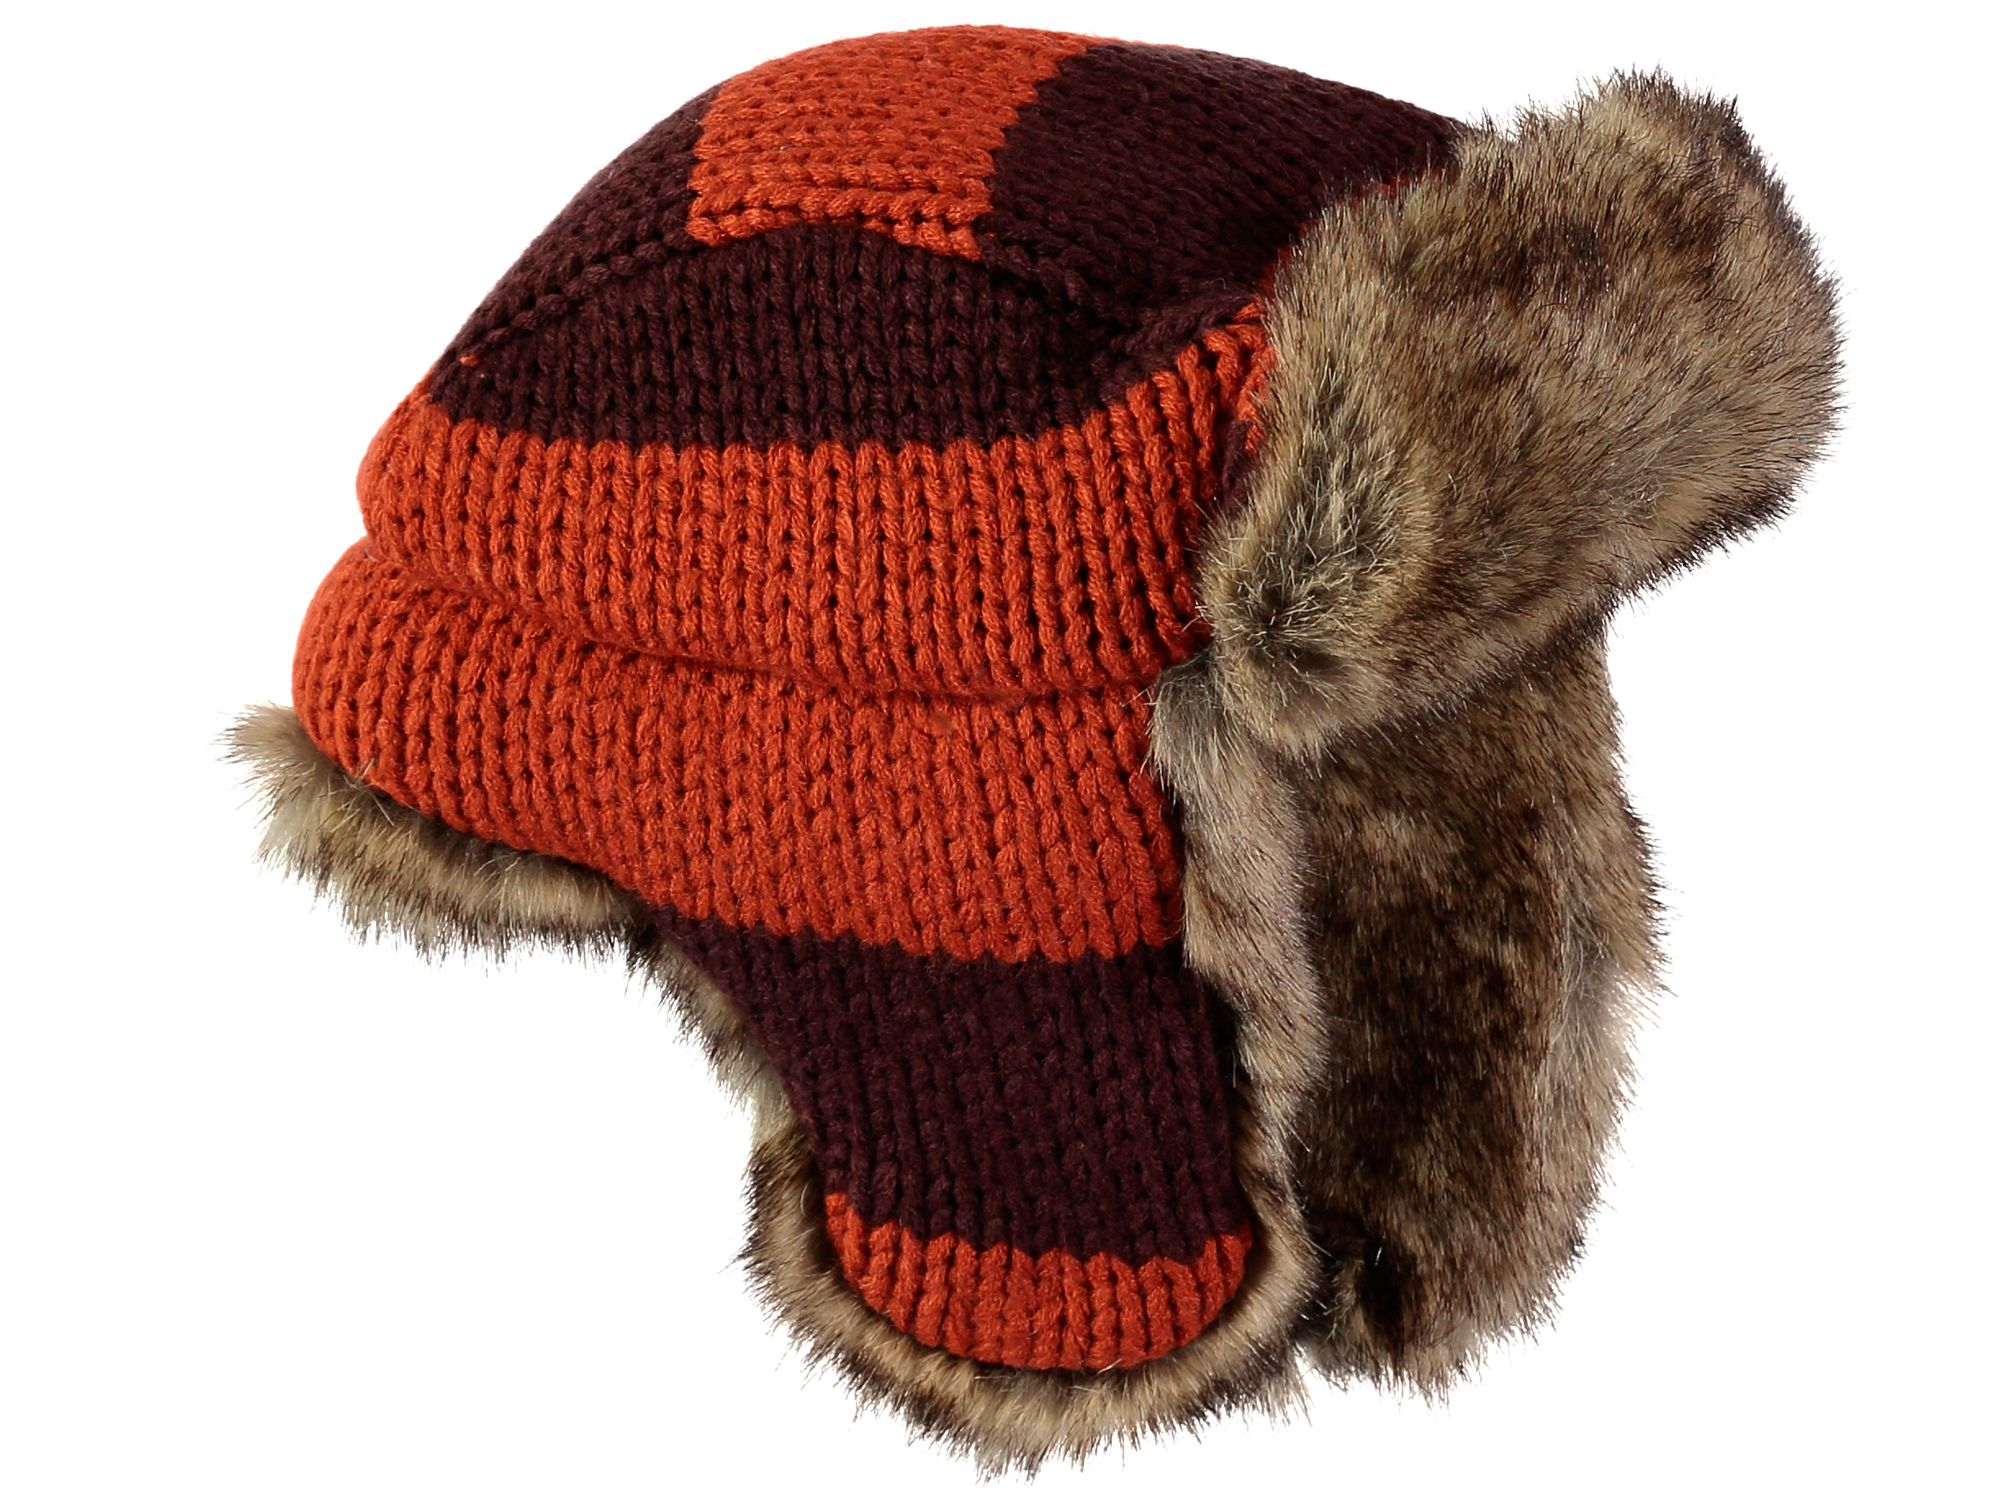 Rockin' Baby Rockin' Baby Brown And Orange Trapper Hat, Multi-Coloured